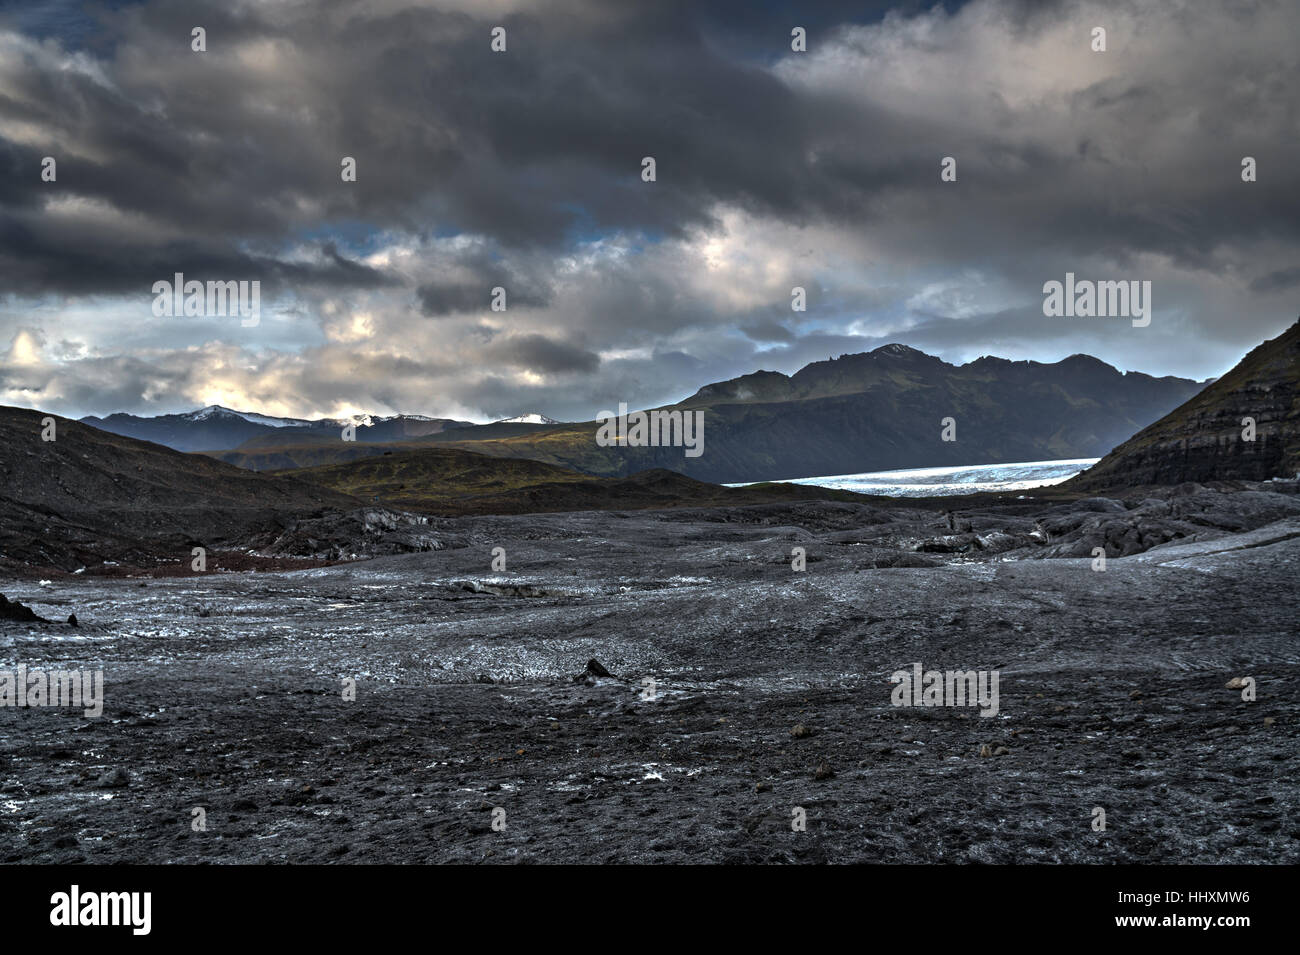 Glacier mountains iceland - Stock Image